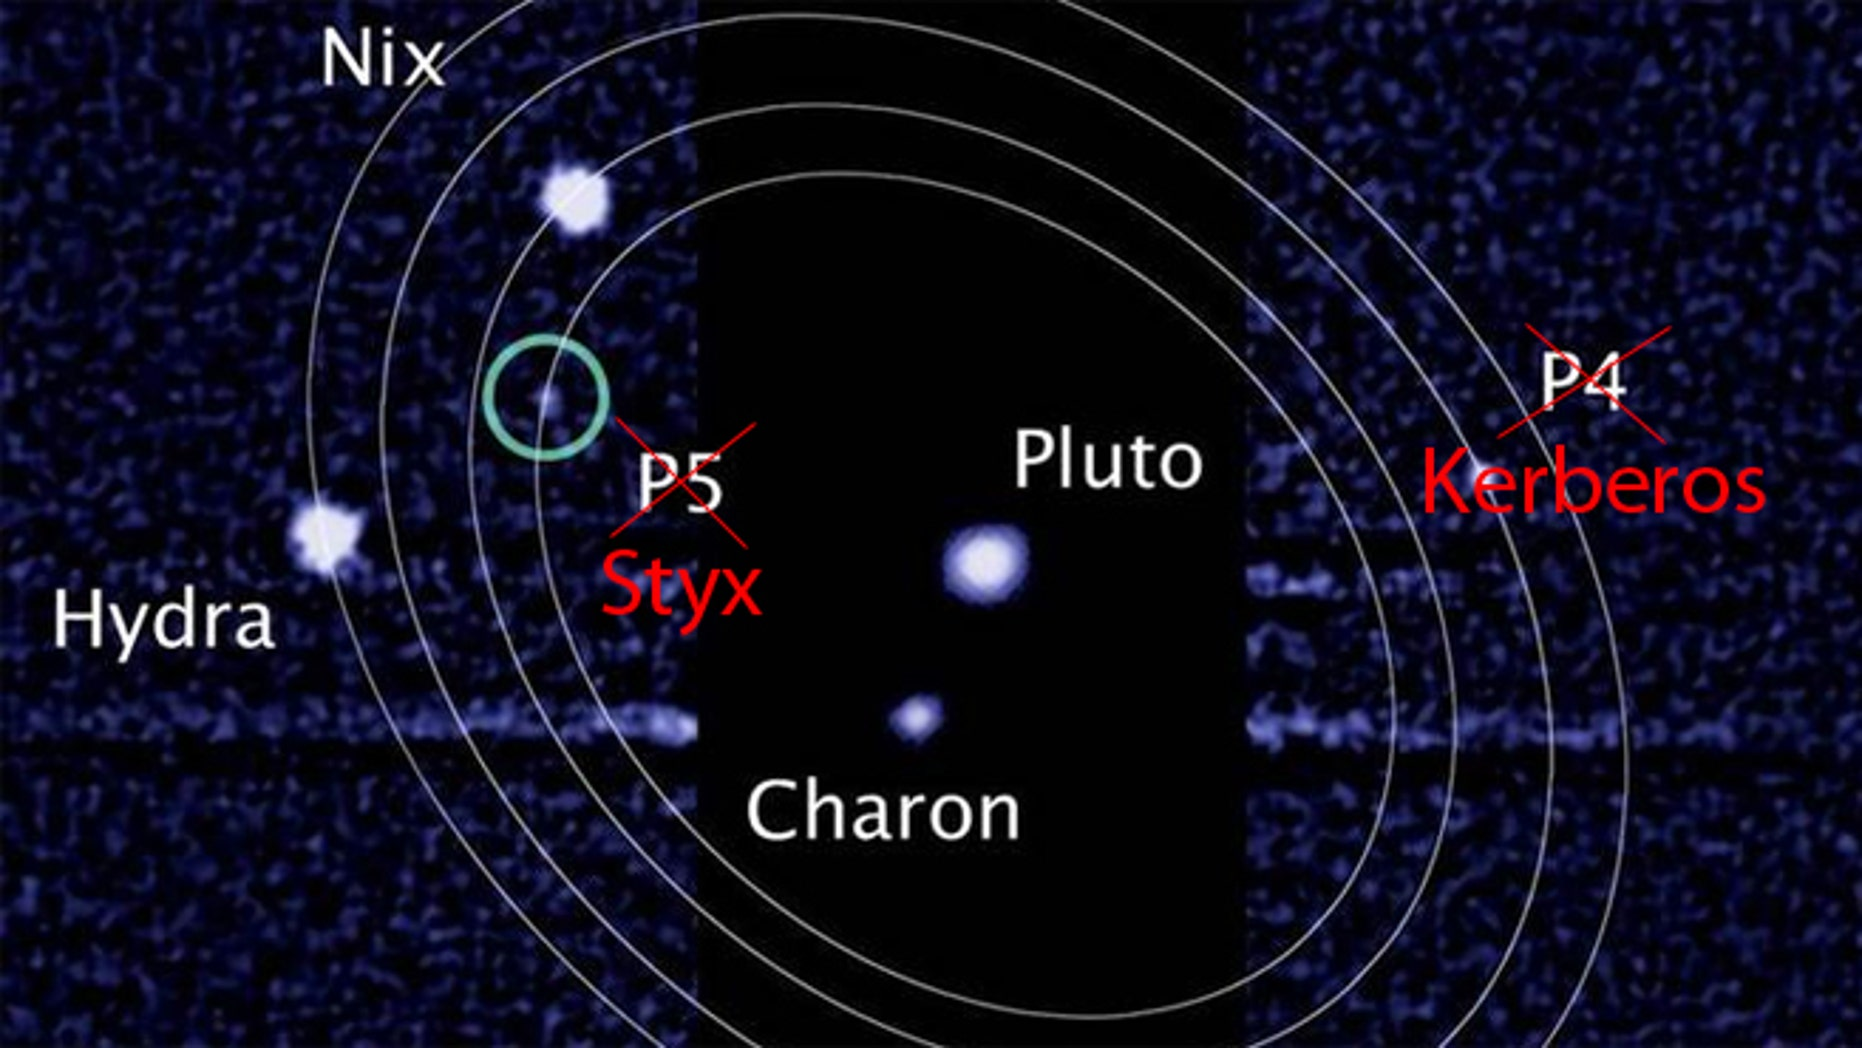 Pluto's smallest moons officially named | Fox News